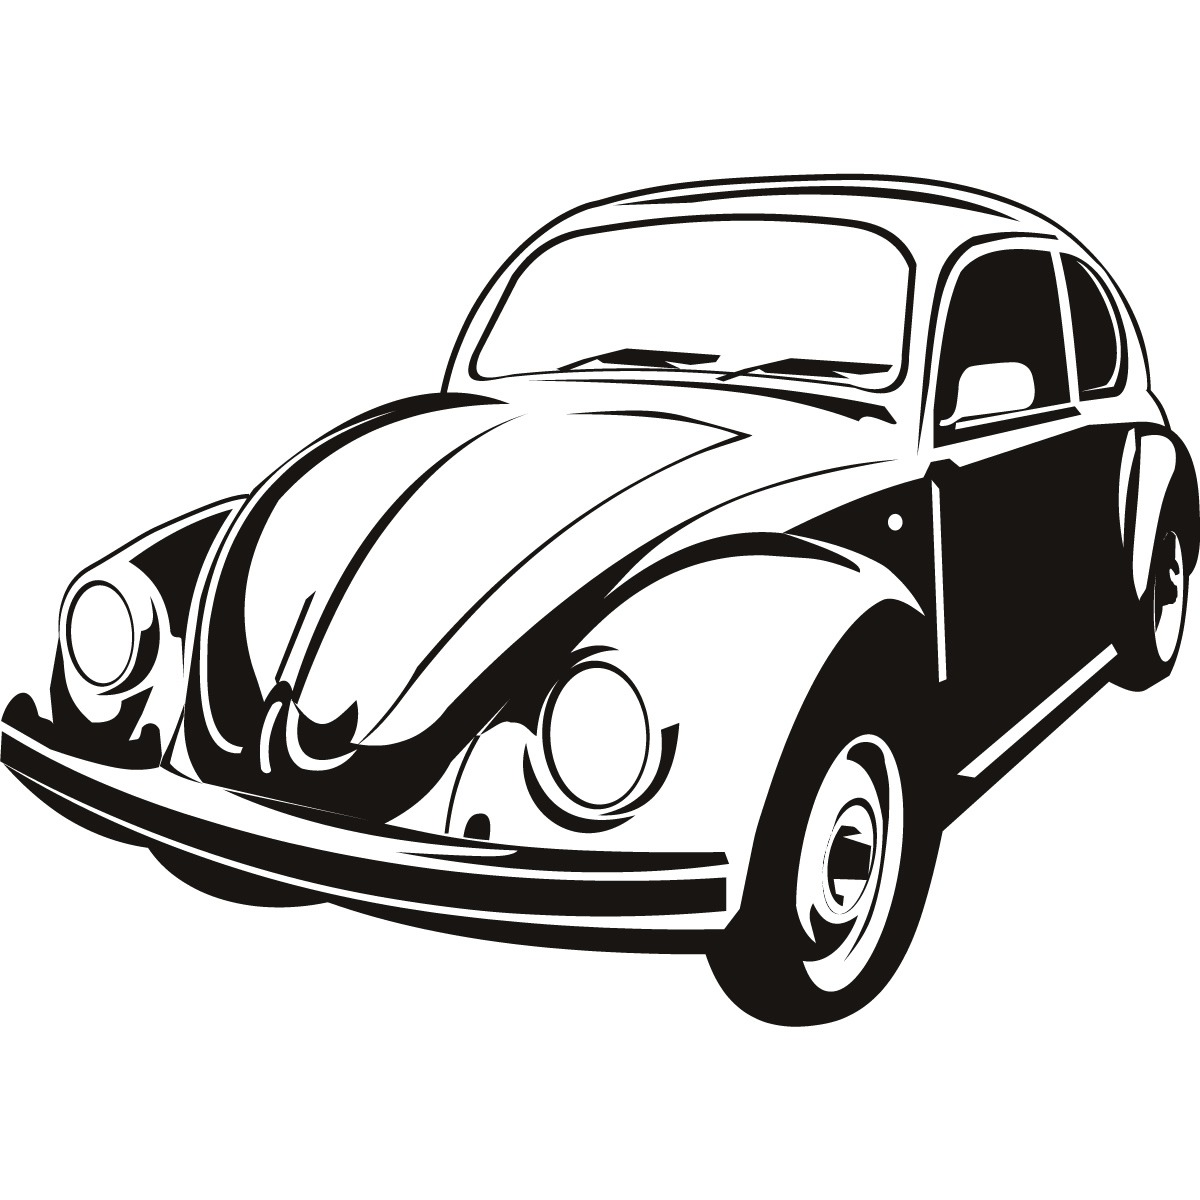 Free Beetle Outline Cliparts, Download Free Clip Art, Free Clip